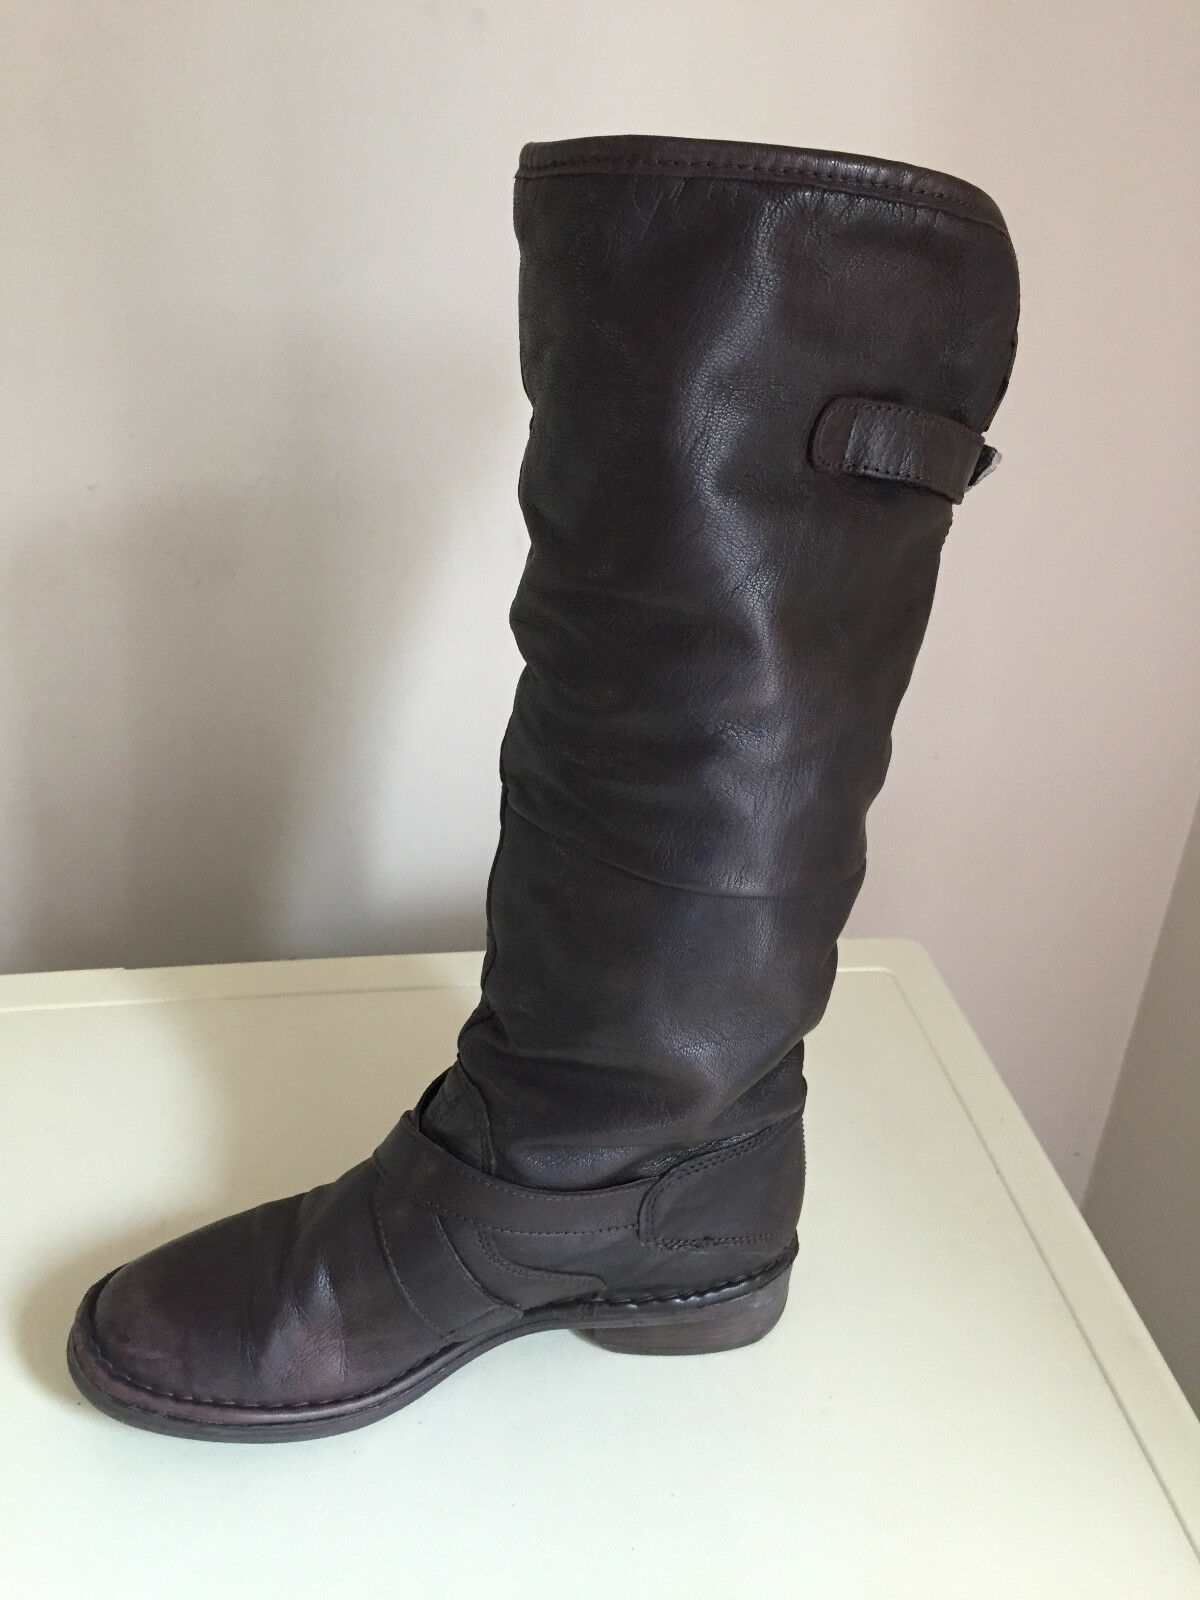 WOMEN LADIES KNEE HIGH LEATHER BROWN BOOTS WITH FLEECE LINING SIZE 40